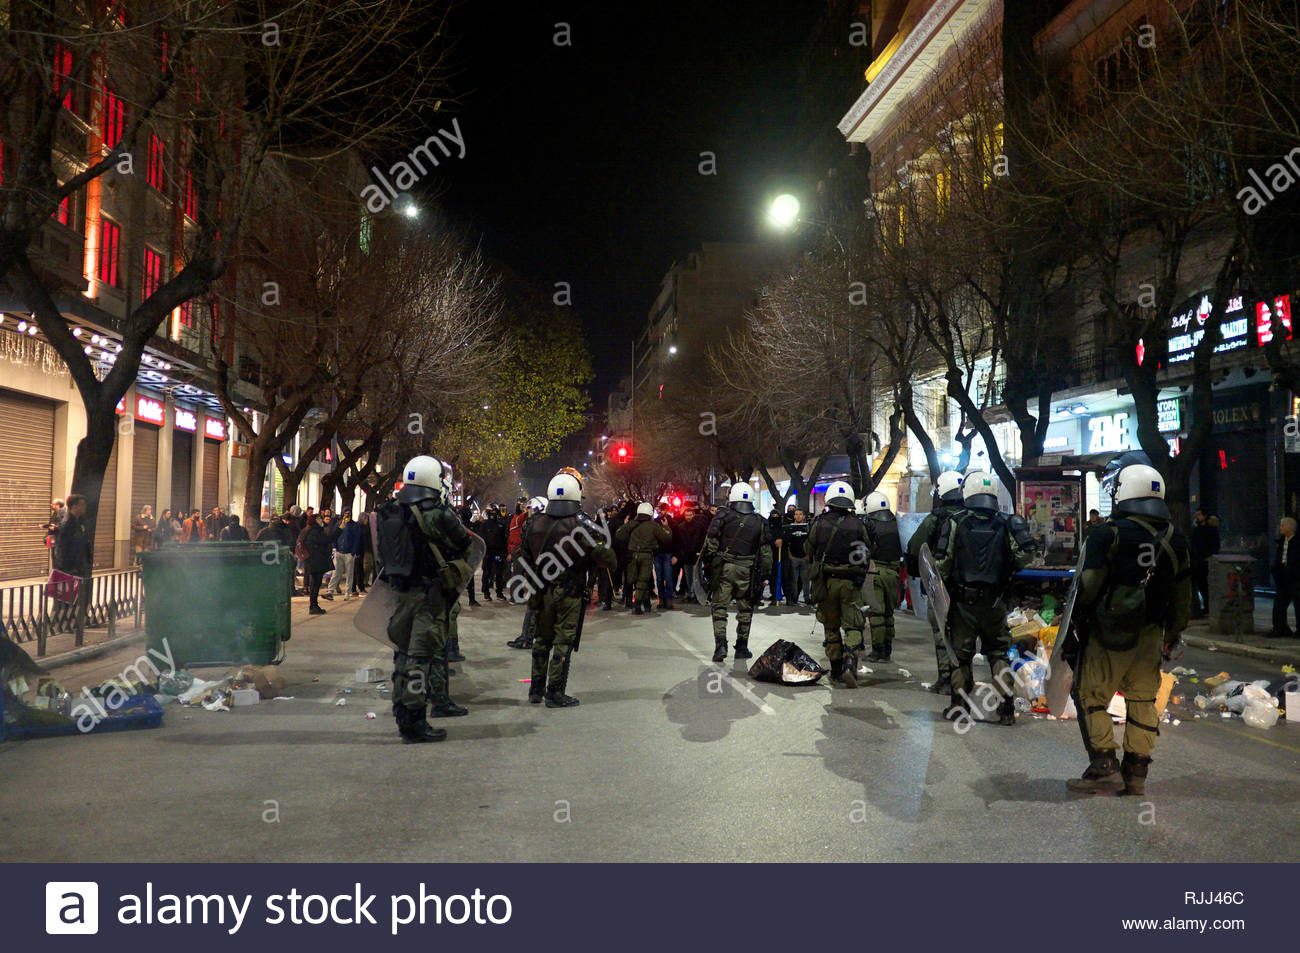 Greek riot police take up positioning against agitators during demonstrations regarding the Macedonian name dispute. Thessaloniki, Greece Jan 2019. Stock Photo